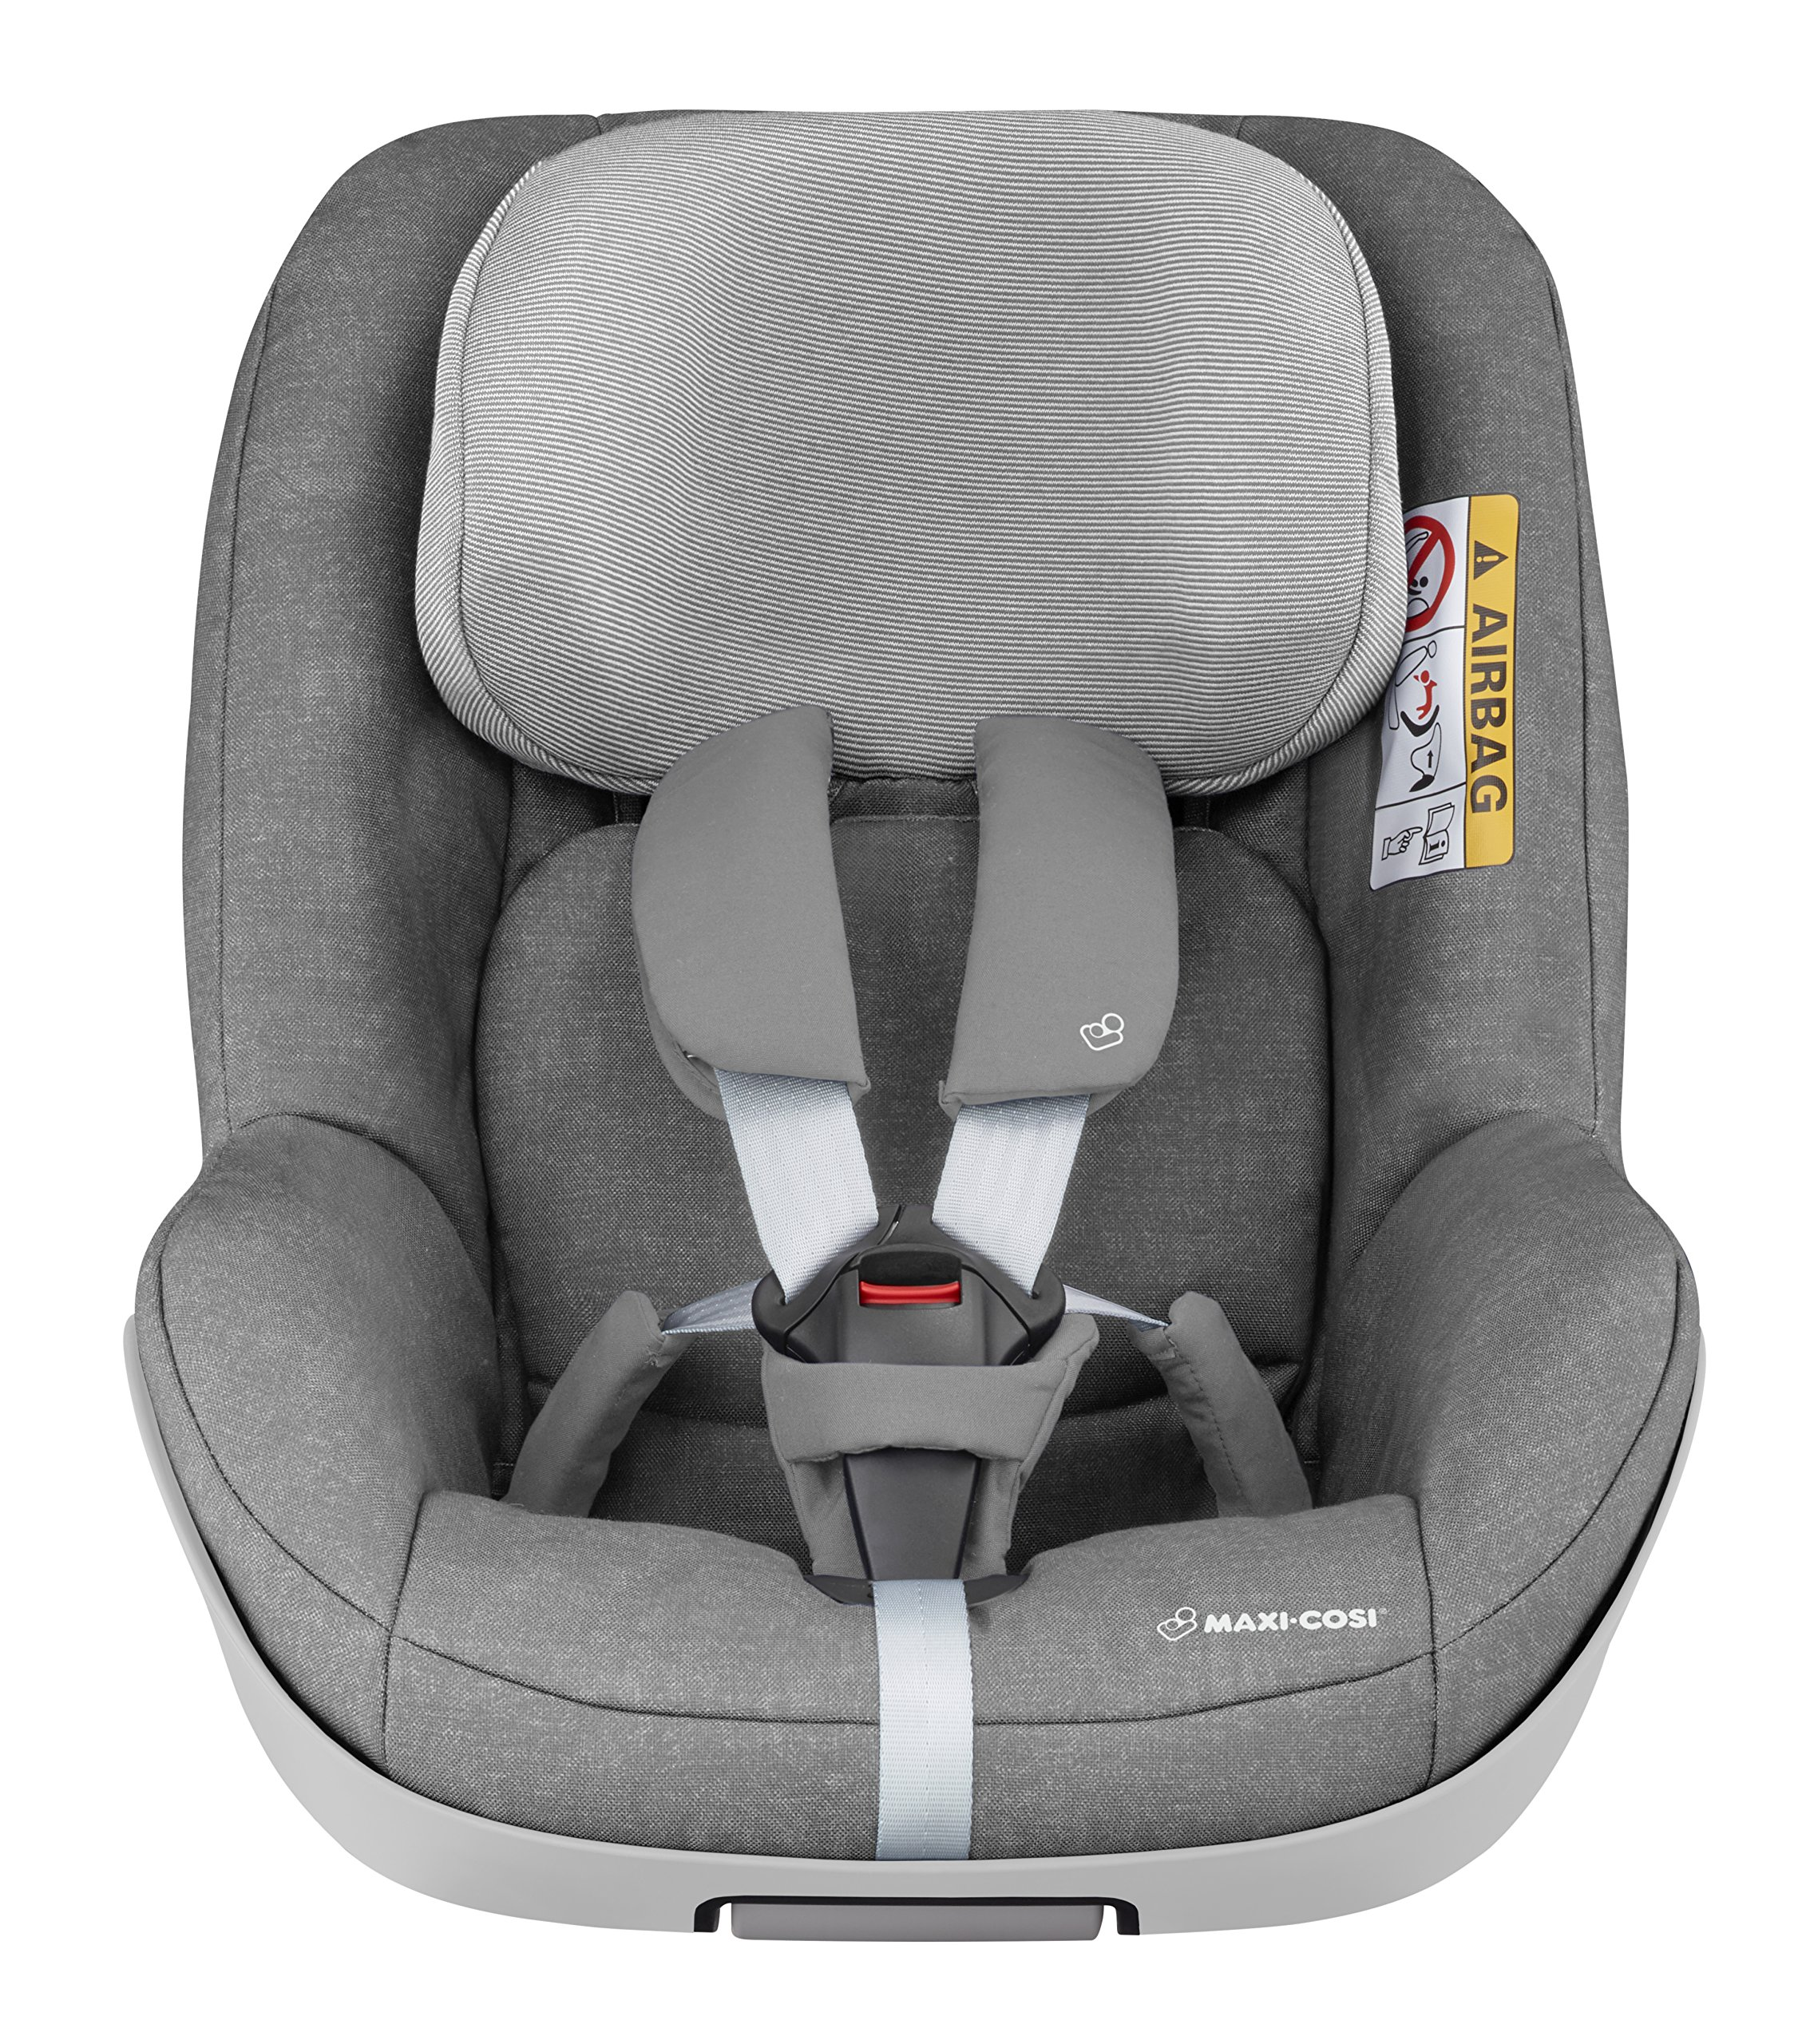 Maxi-Cosi Pearl One i-Size Toddler Car Seat Group 1, Rear-Facing Car Seat, ISOFIX, 67-105 cm, 6 Months-4 Years, Nomad Grey Maxi-Cosi Must be used with the maxi-cosi family fix one i-size base Approved according to the latest european safety standard i-size (r129) Innovative stay open harness to easily get the child in and out in seconds 3